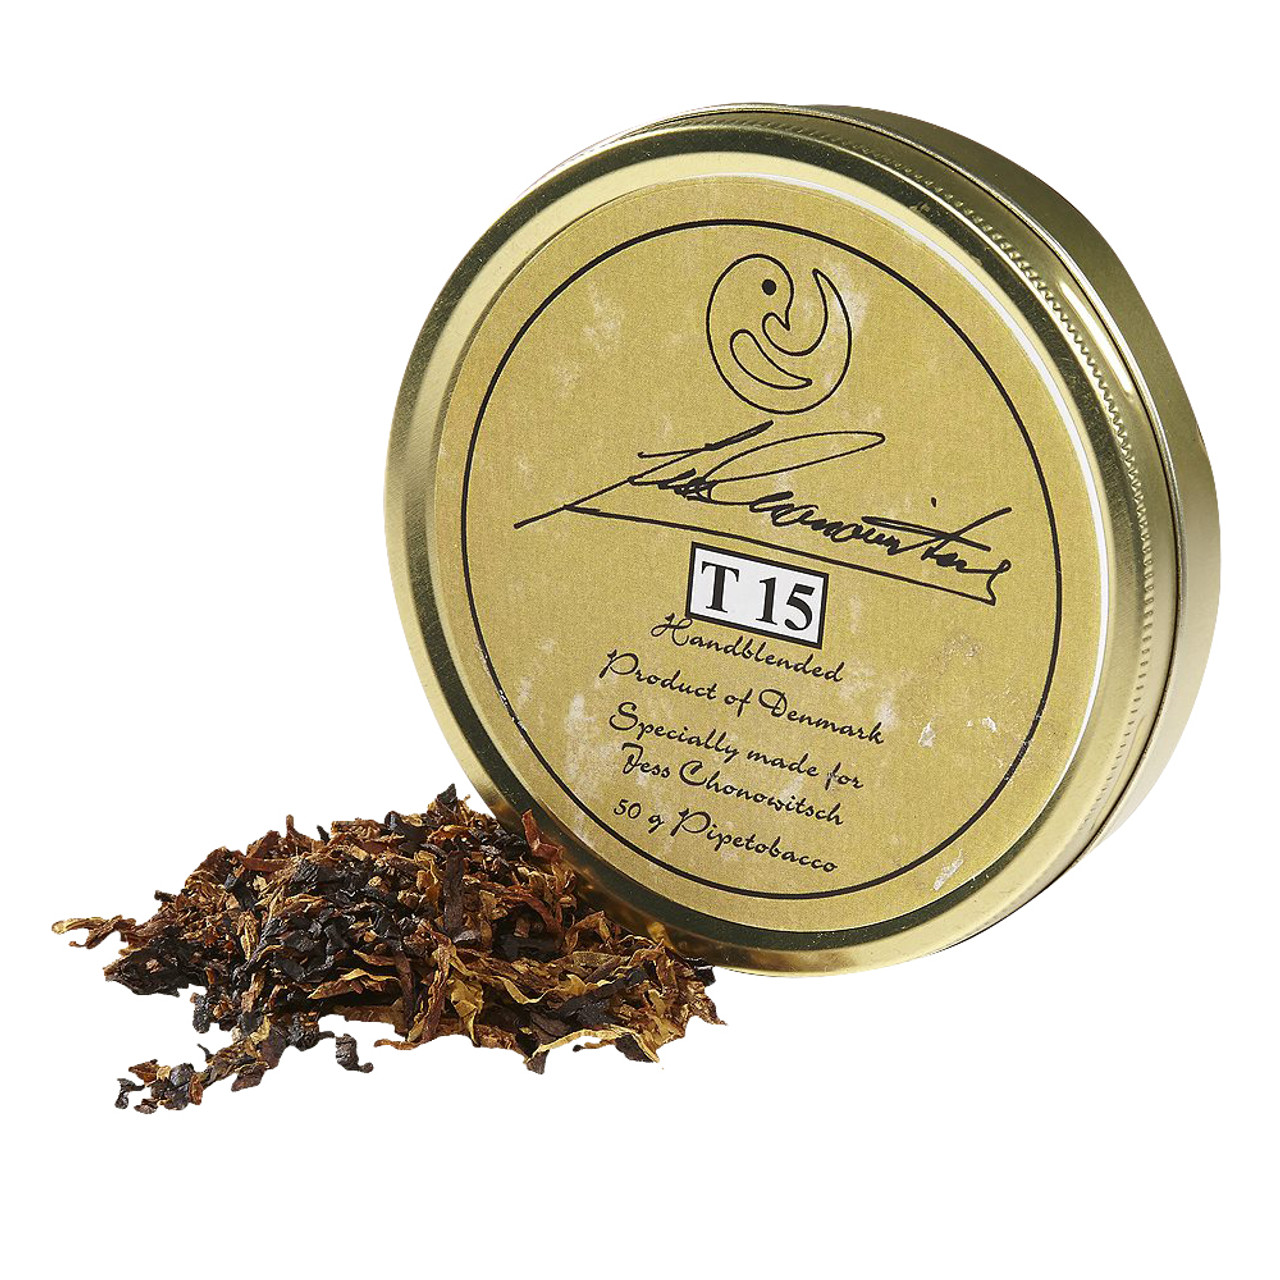 Chonowitsch T 15 Pipe Tobacco | 1.75 OZ TIN